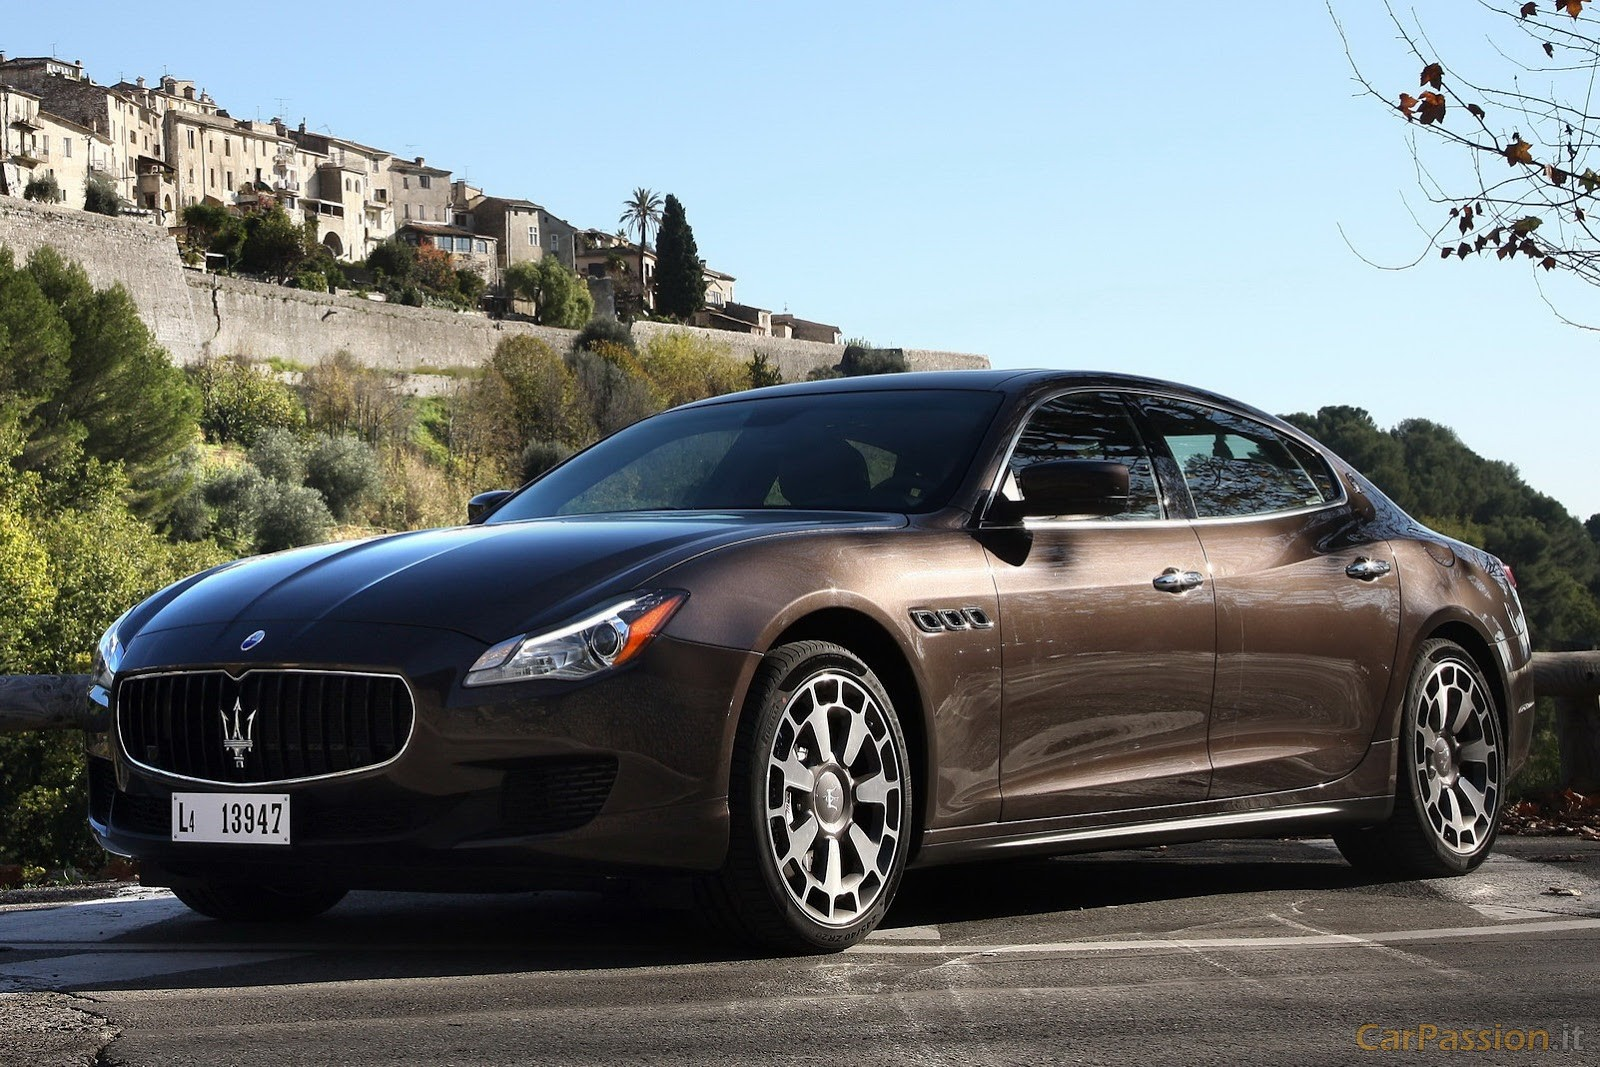 maserati quattroporte 3 car hd wallpaper. Black Bedroom Furniture Sets. Home Design Ideas